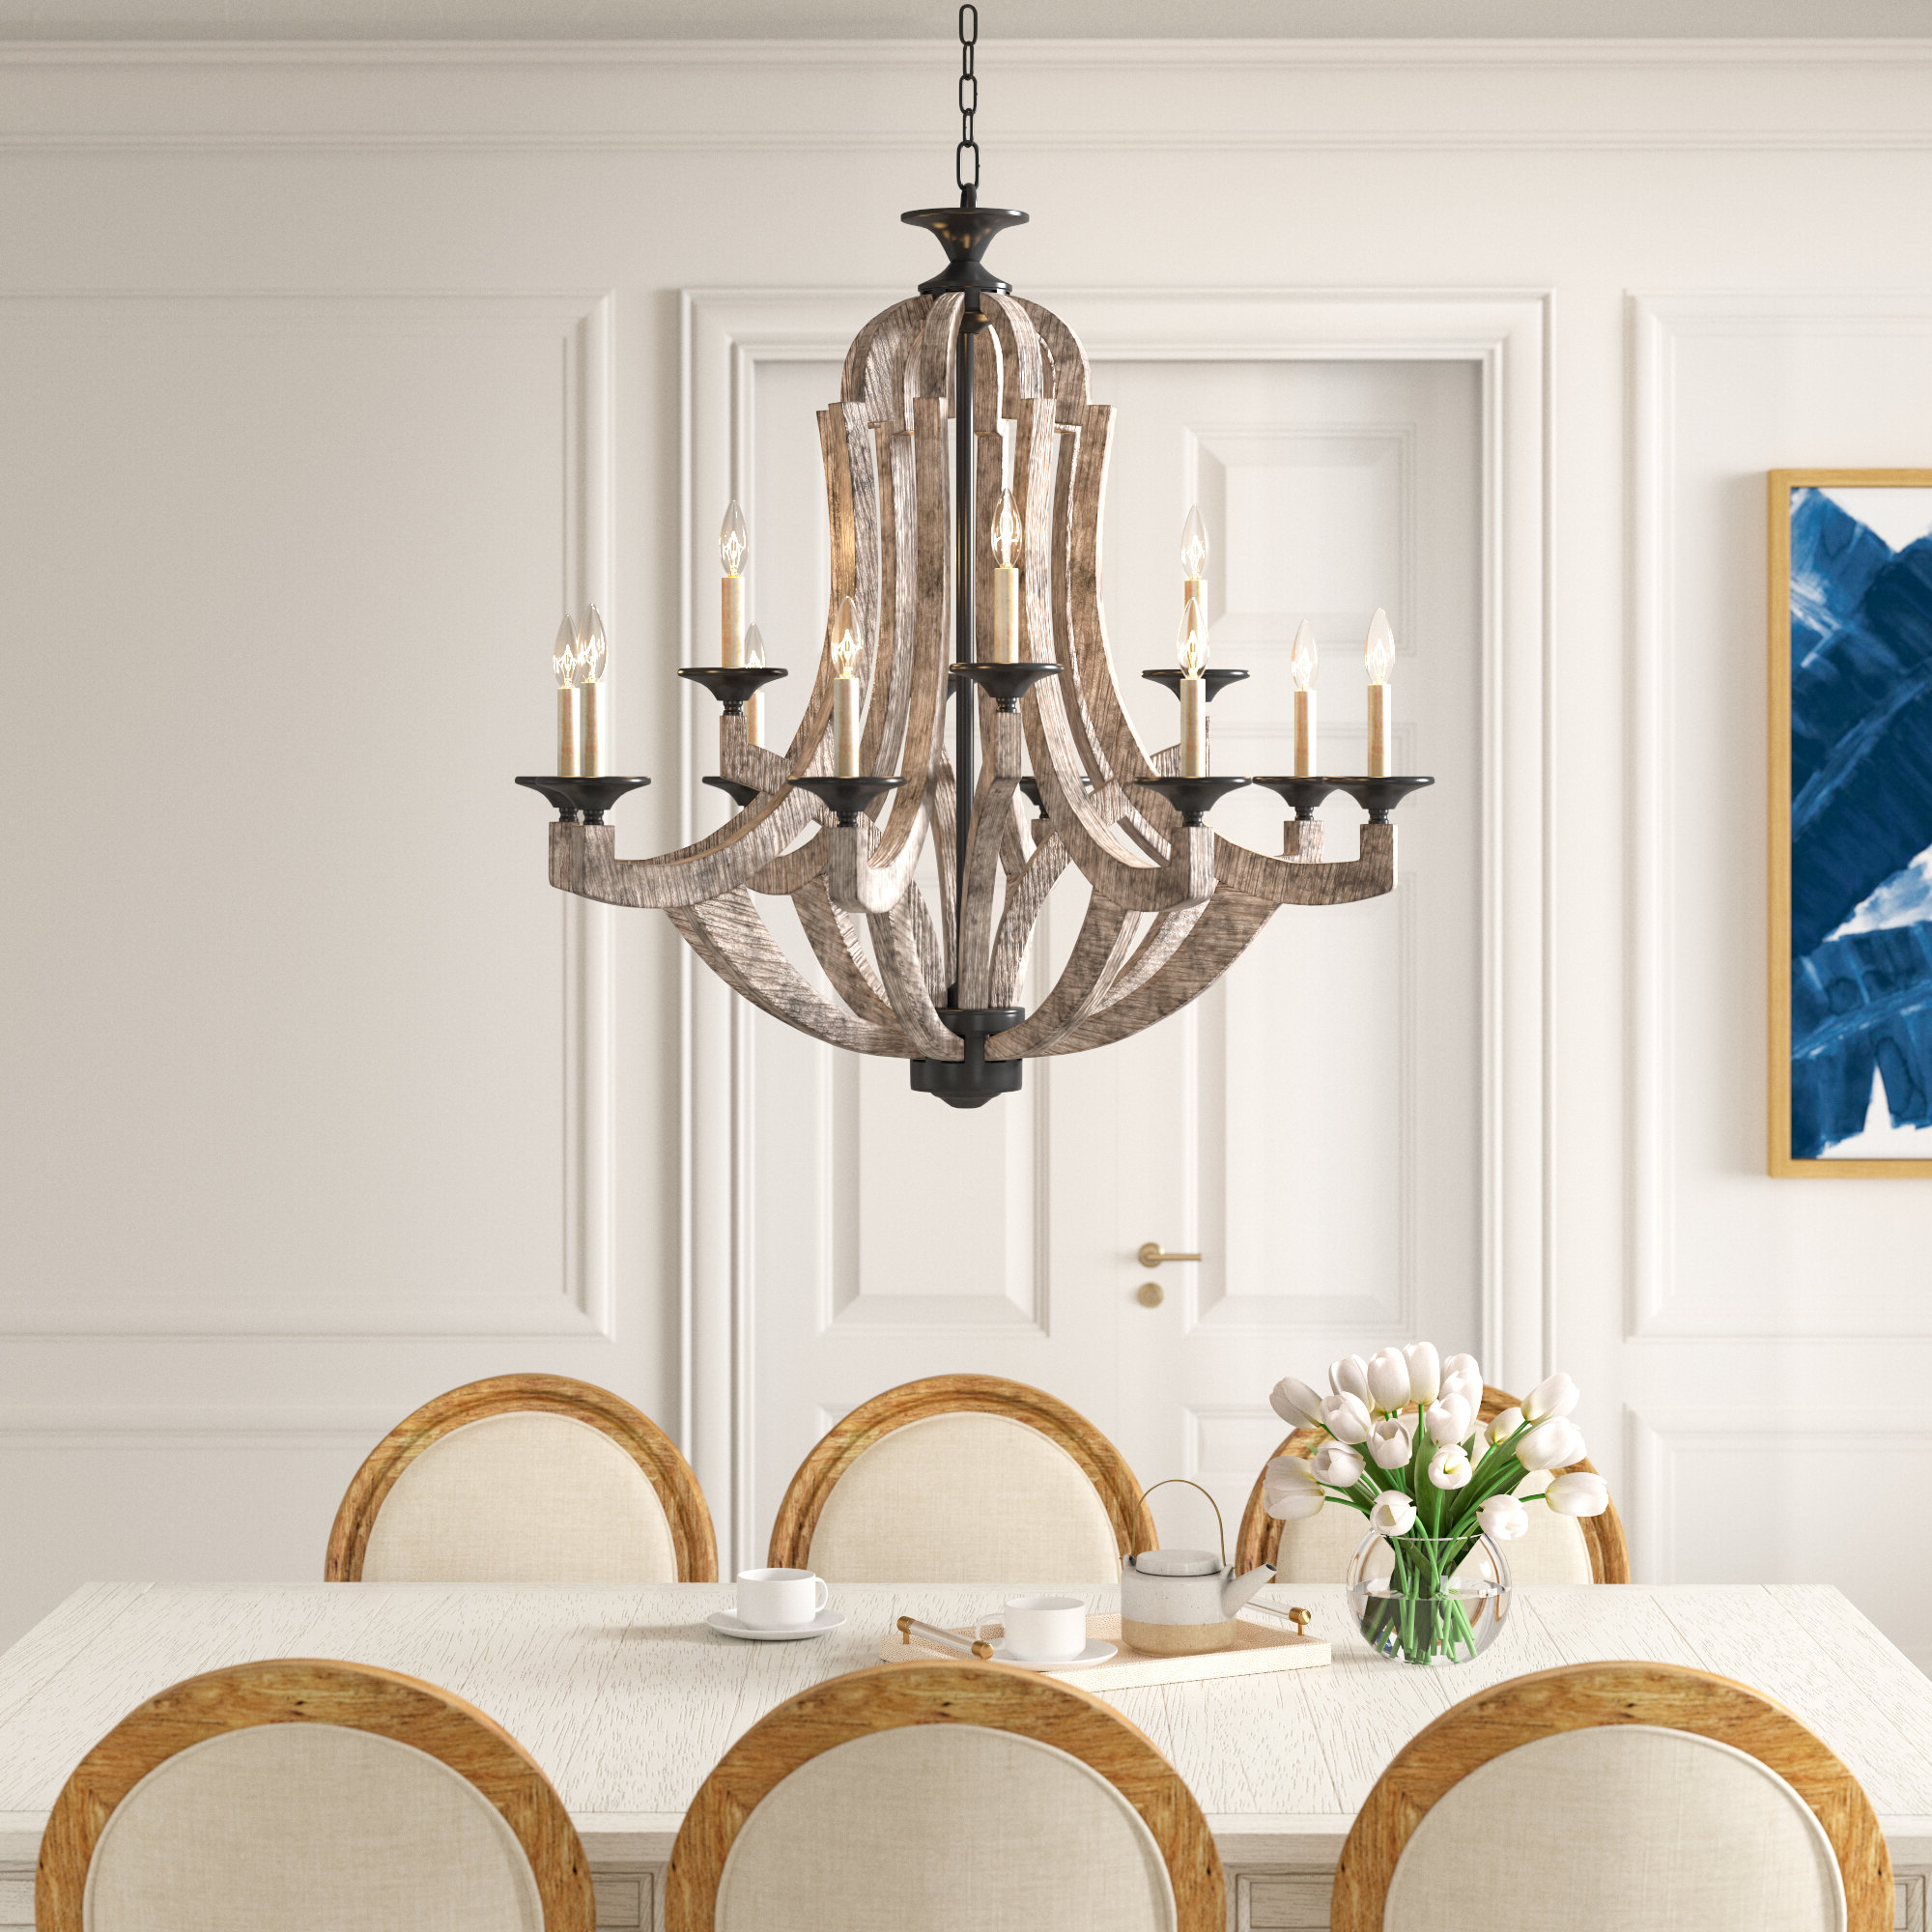 Most Recently Released Shayla 12 Light Wagon Wheel Chandeliers Intended For 11+ Chandeliers (View 8 of 25)